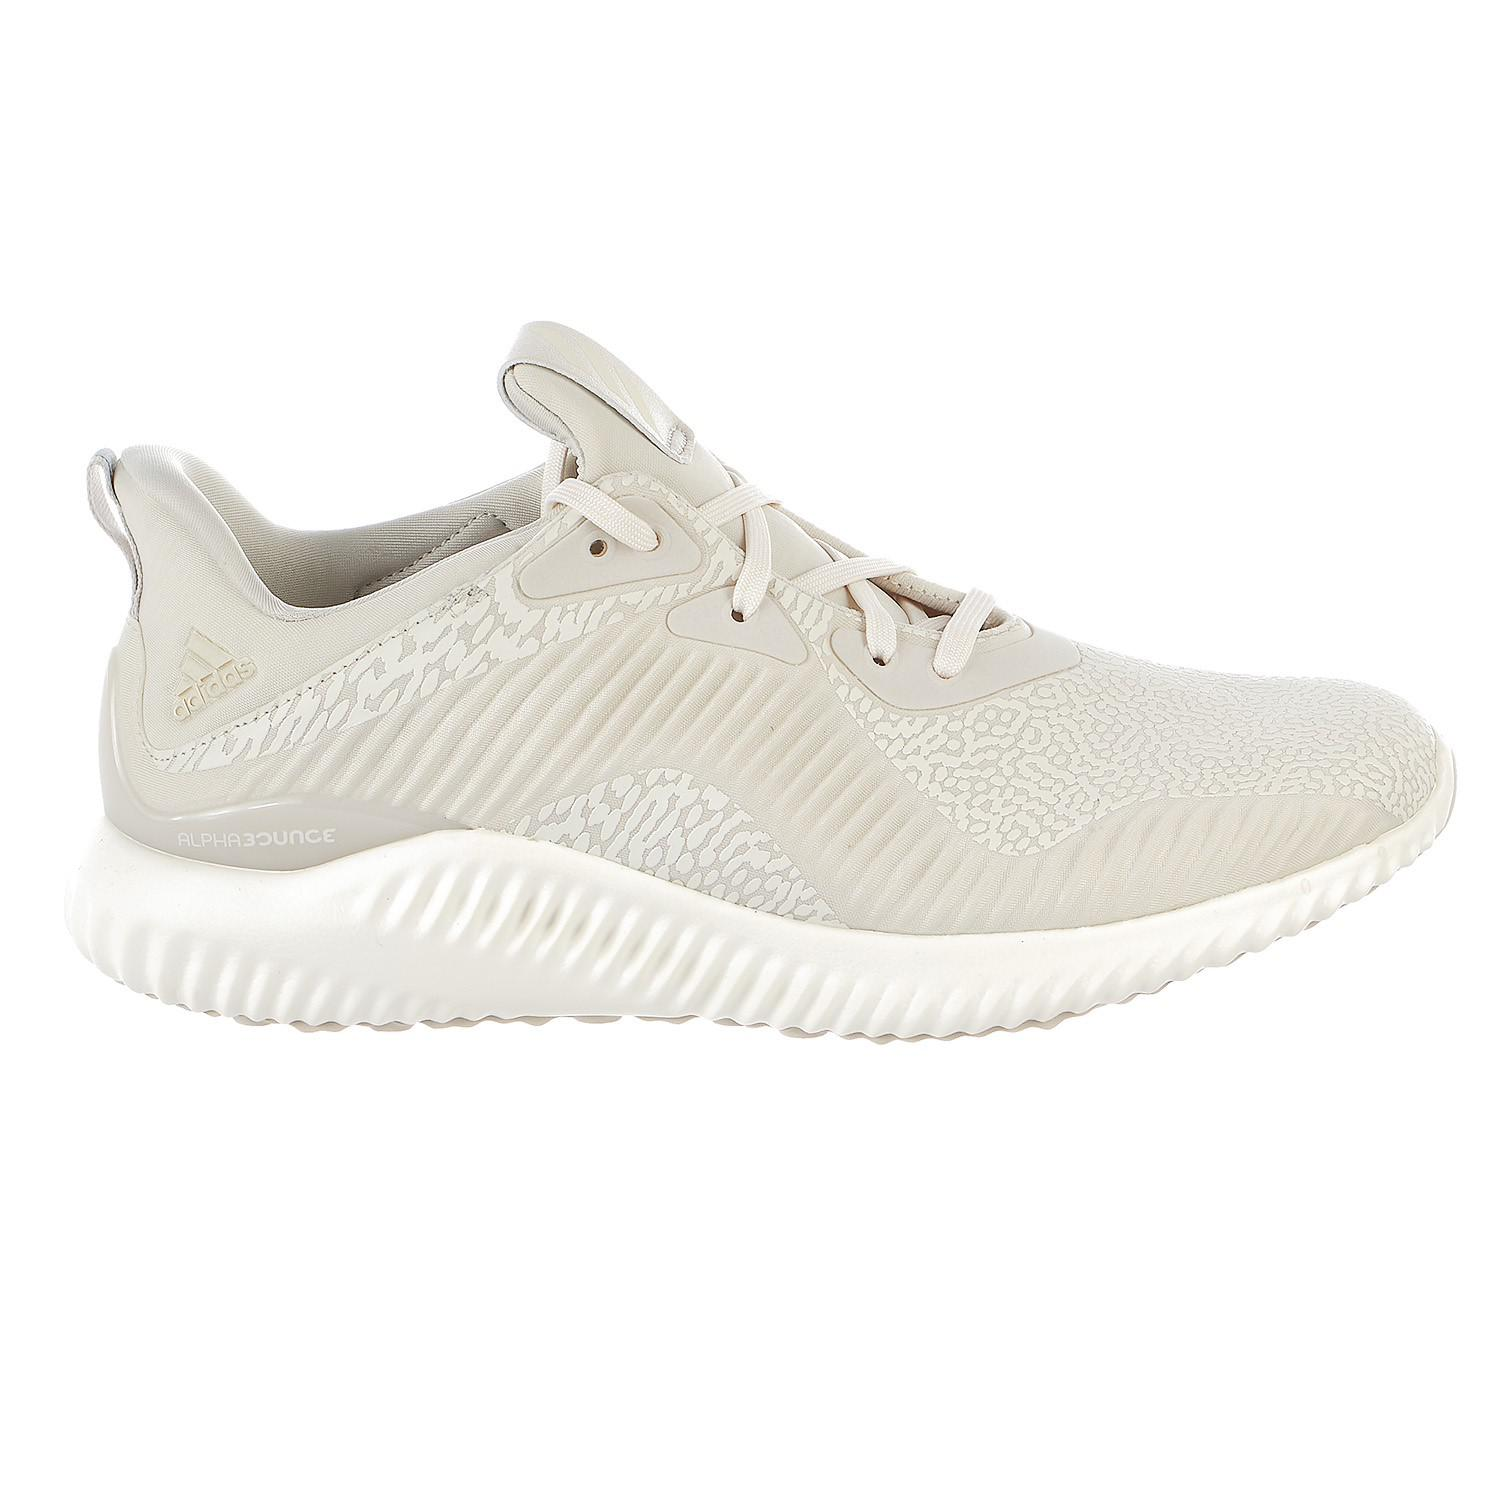 reputable site b1930 2412a Lyst - adidas Alphabounce Reflective Hpc Ams Shoes for Men